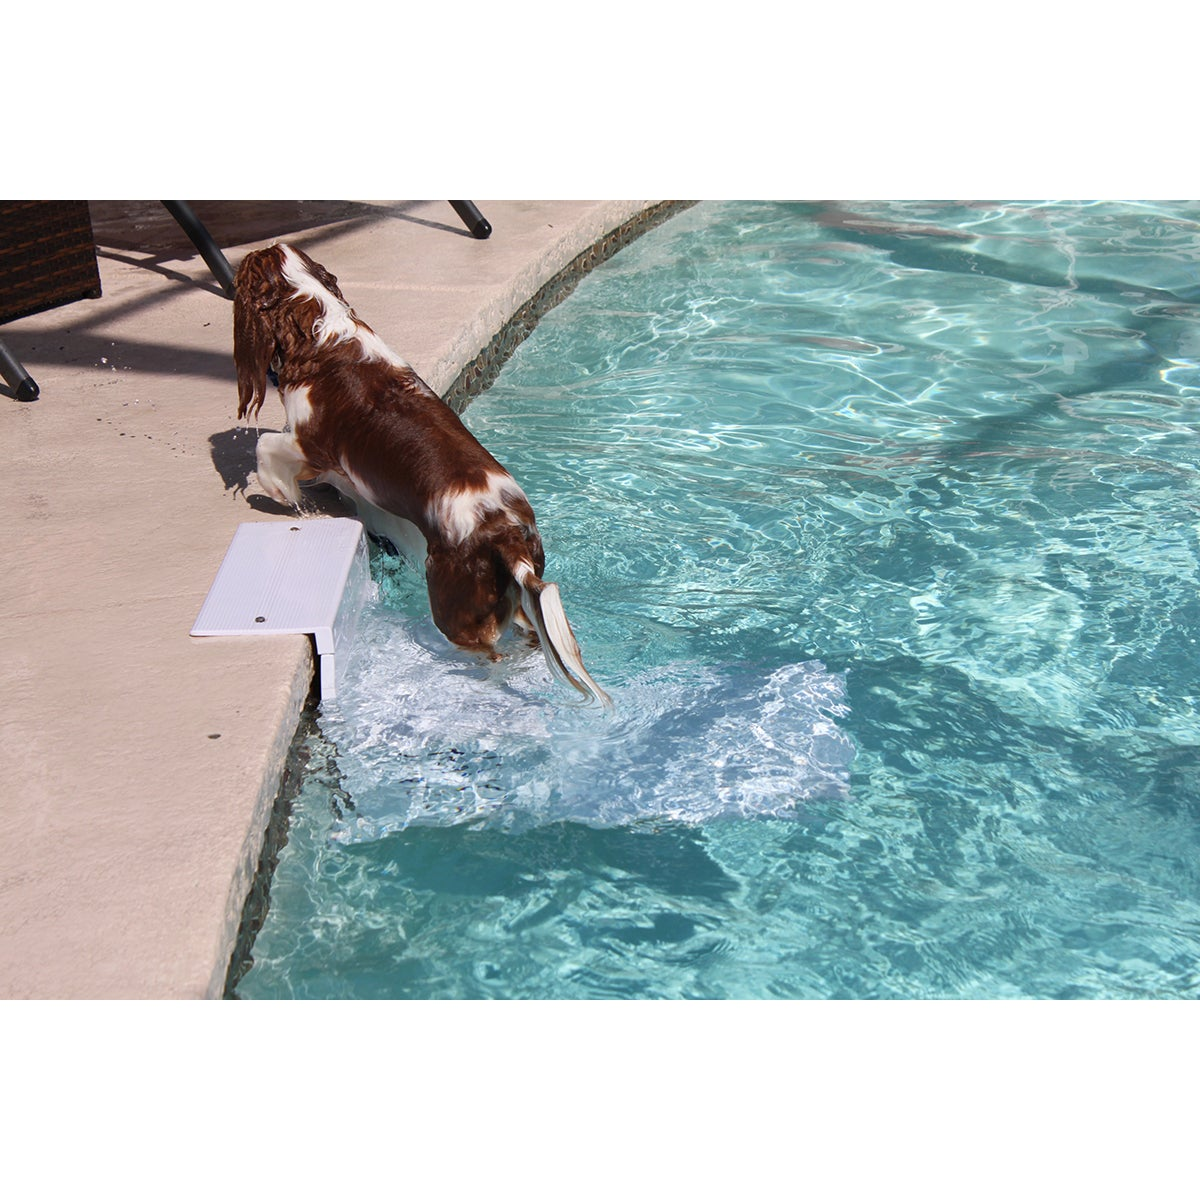 PoolPup Steps4 To 150 lbs (4 To 150 lbs), Blue pool